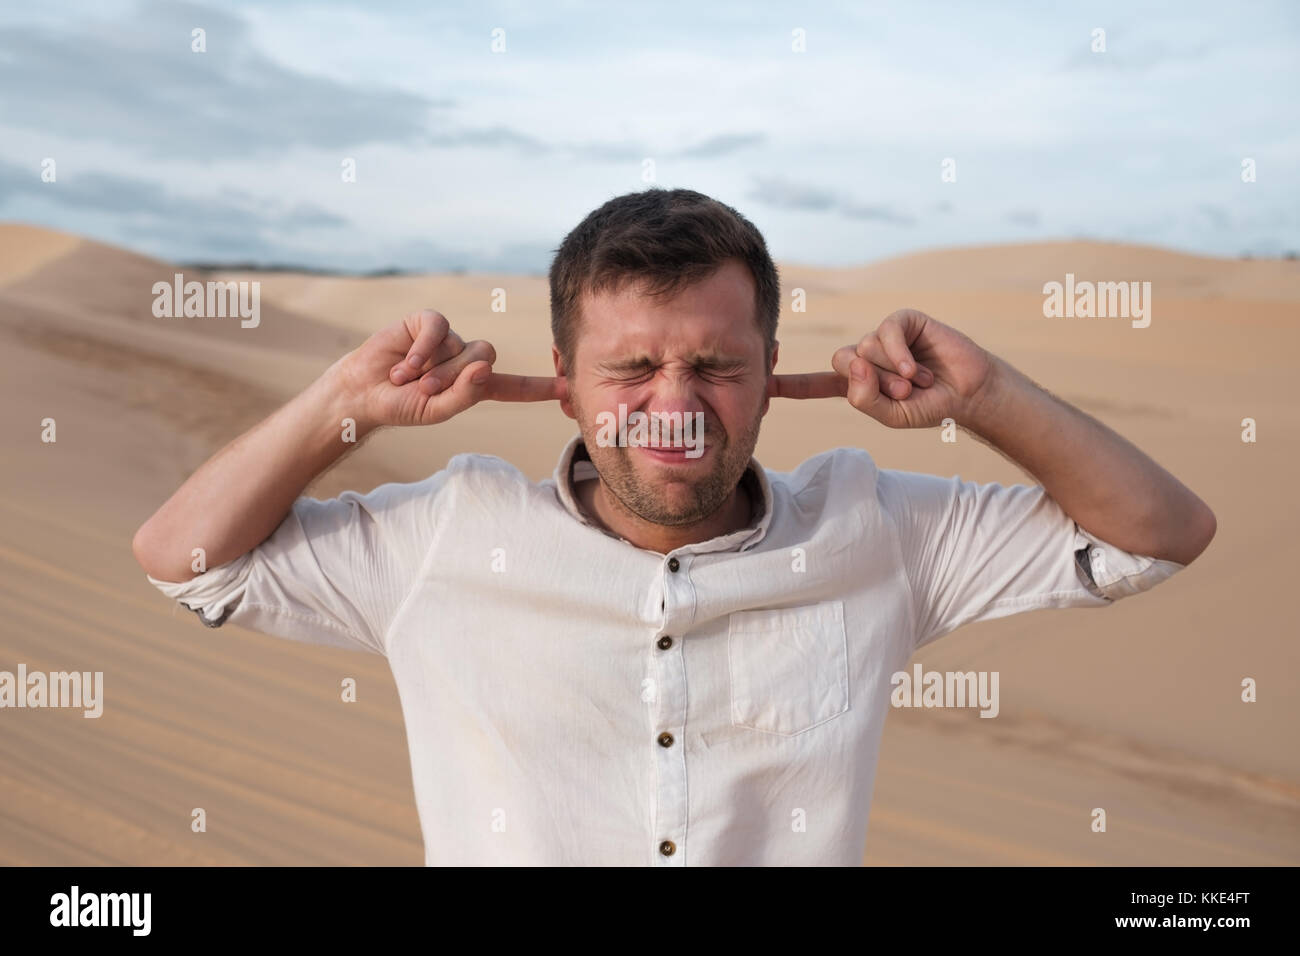 A middle-aged man stands alone in desert and closes his ears with his hands. - Stock Image